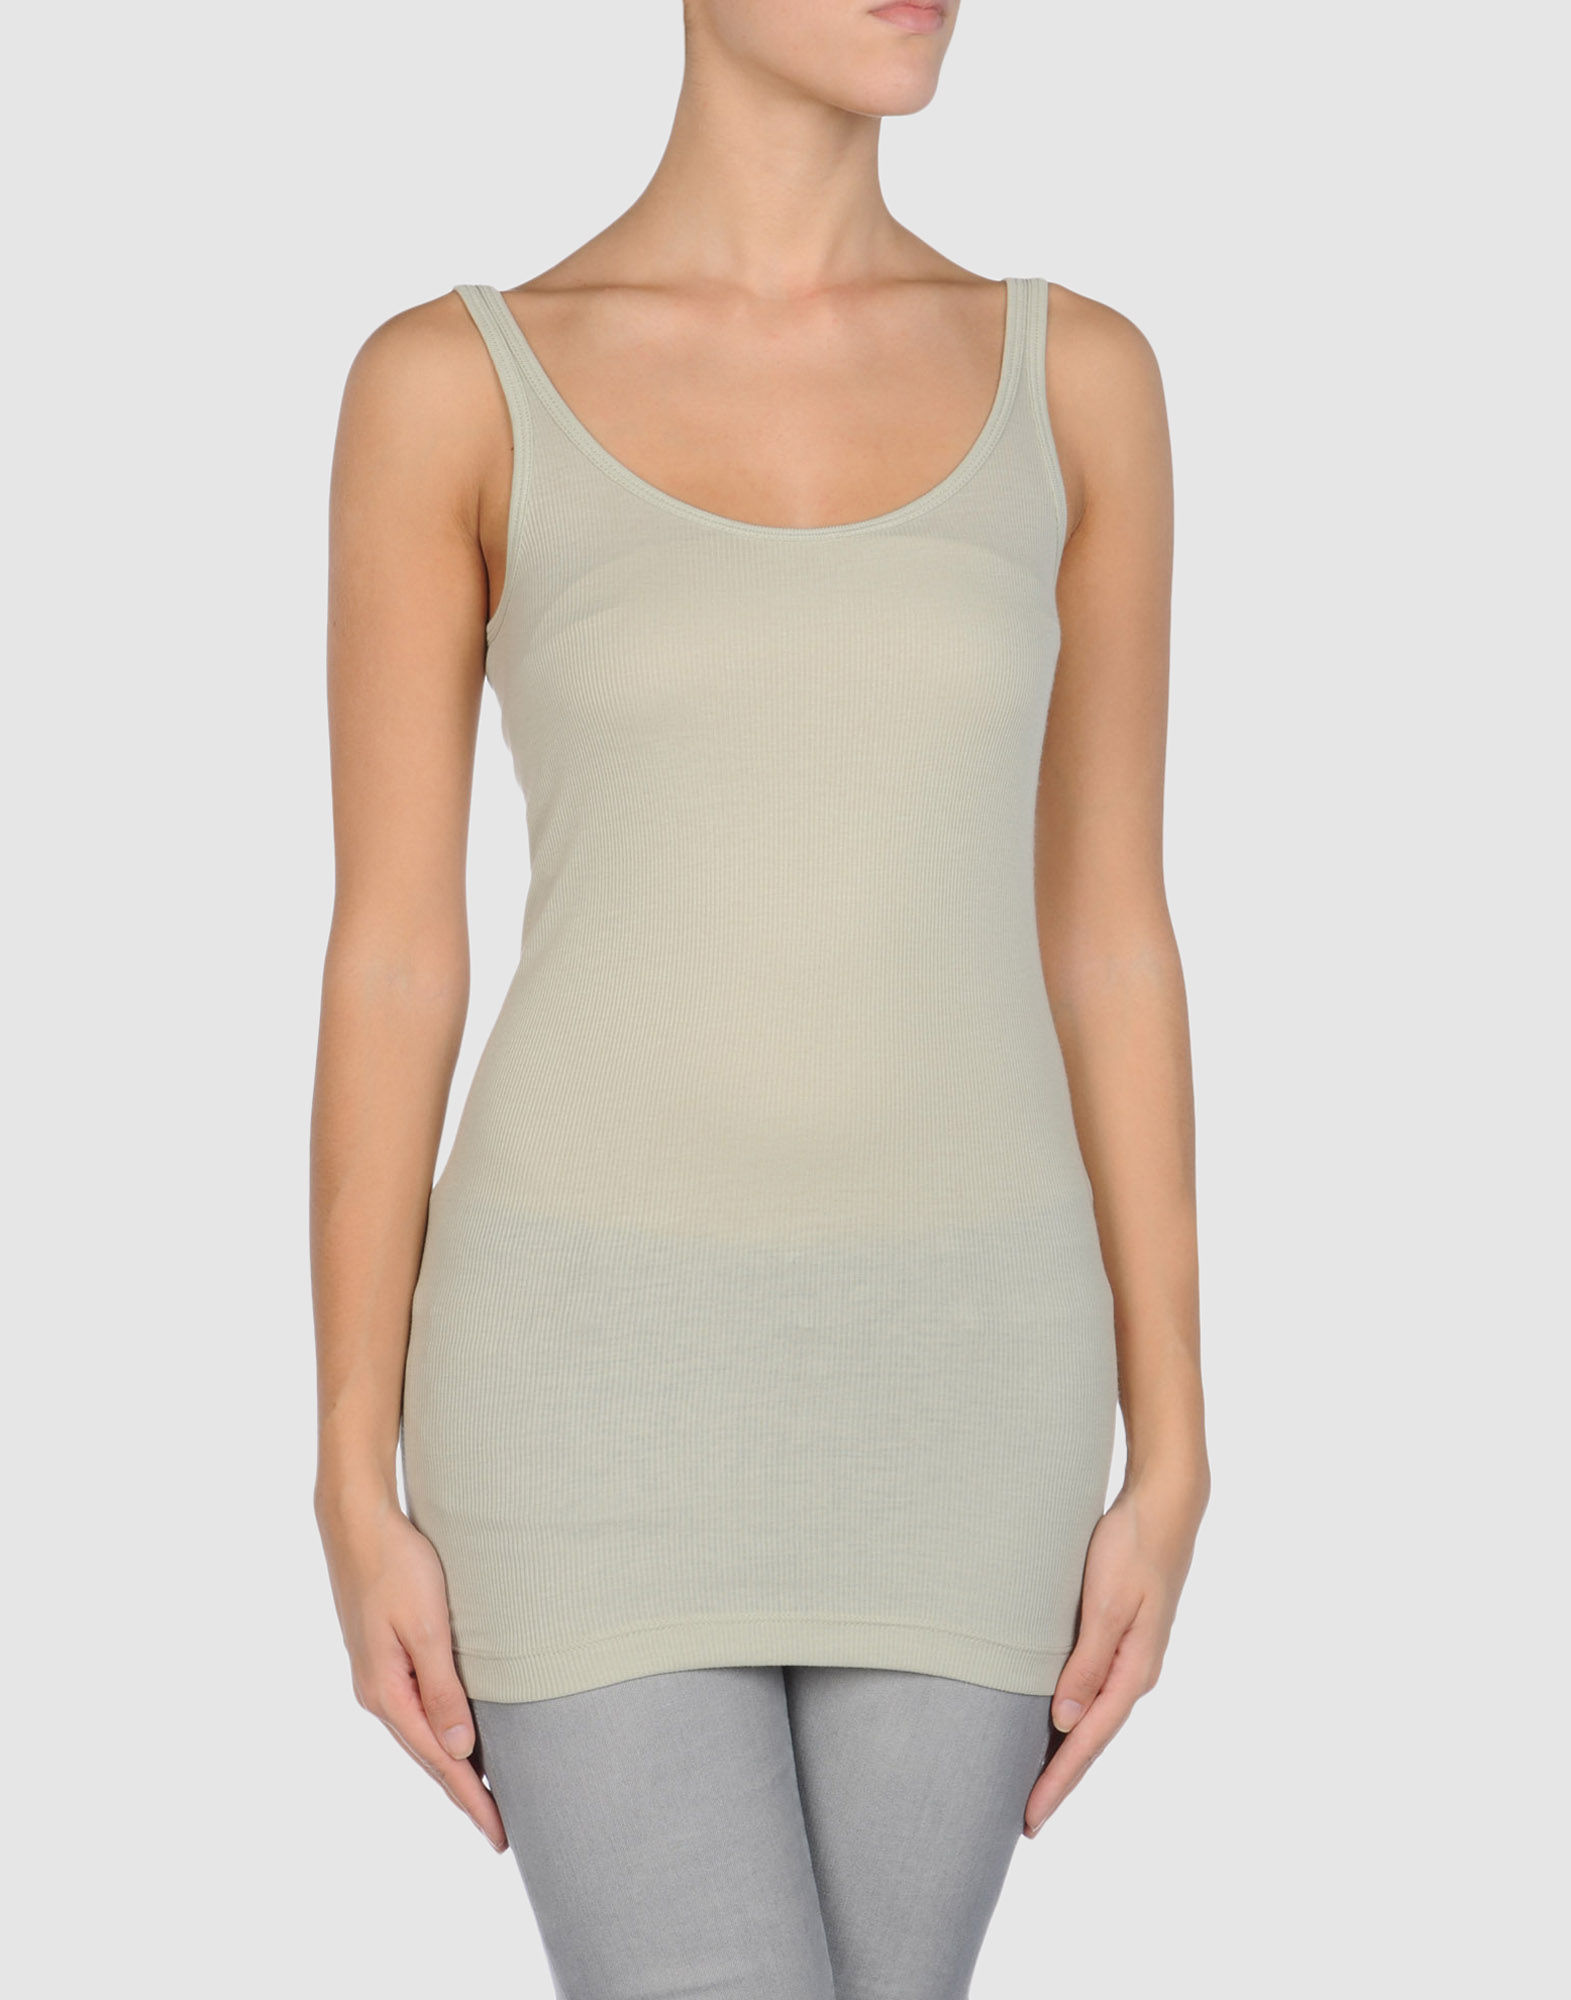 Vince sleeveless t shirt in gray light grey lyst for Vince tee shirts sale